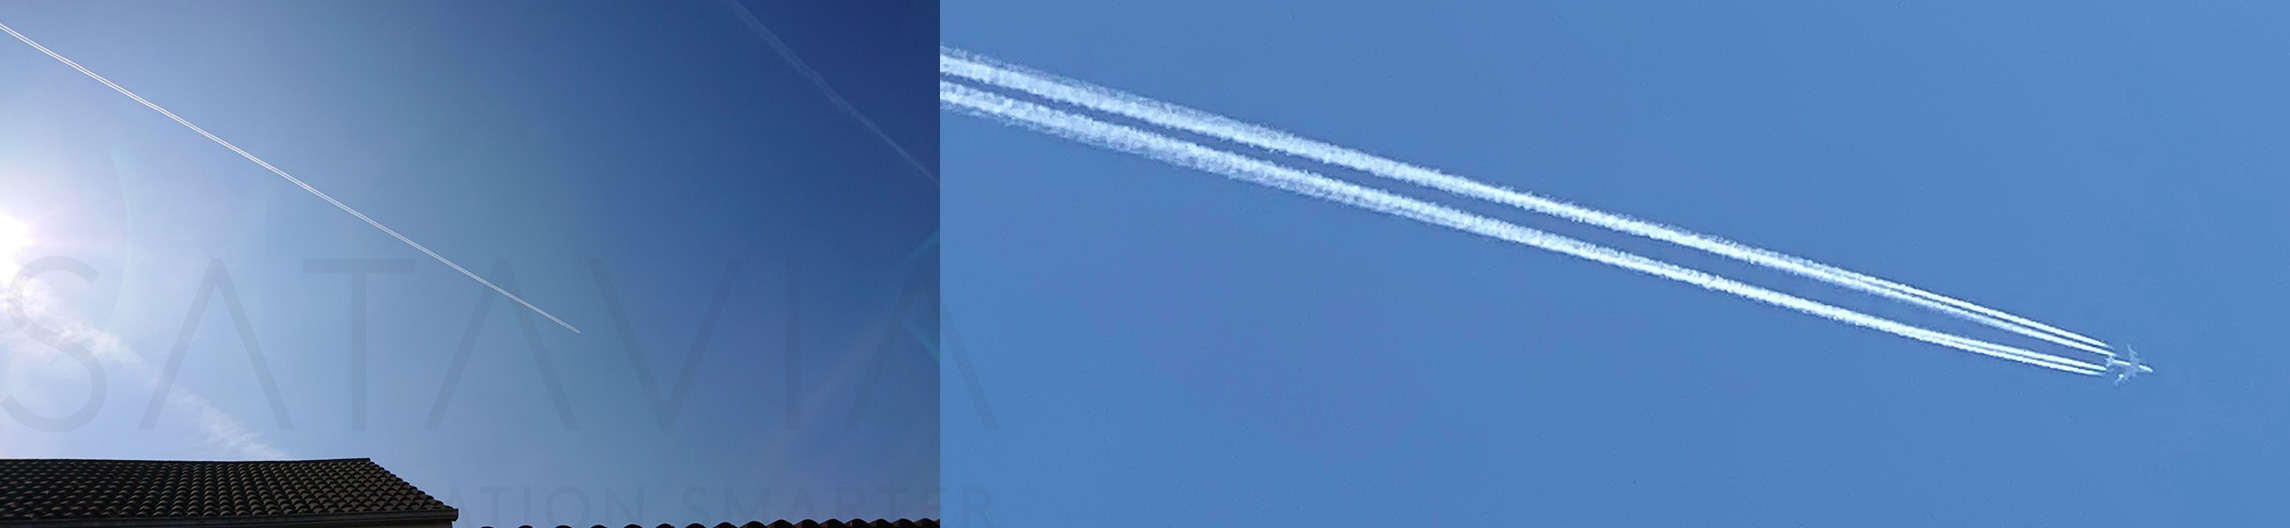 Figure 1 – Contrail observations of LH430 (FRA-ORD) over city of Cambridge at approximately 1230 UTC, on April 10th 2020.